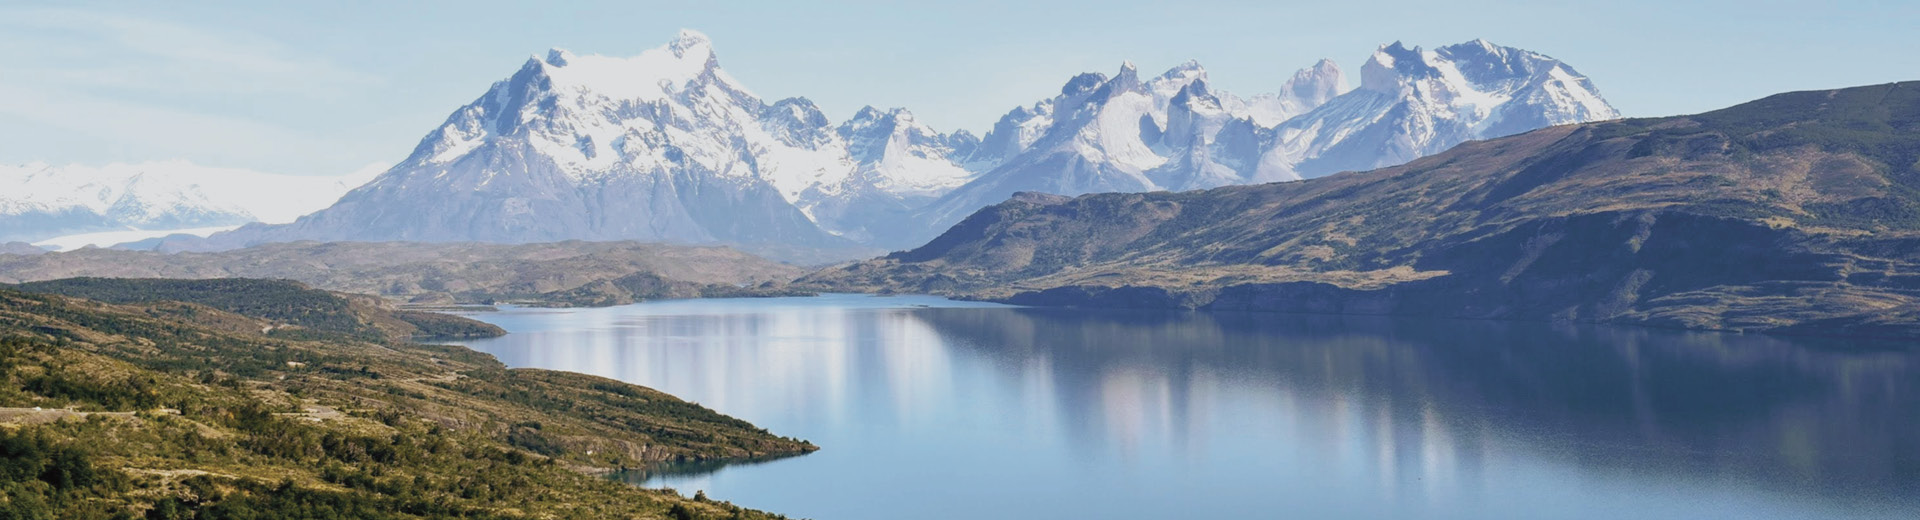 chilean patagonia mountain views